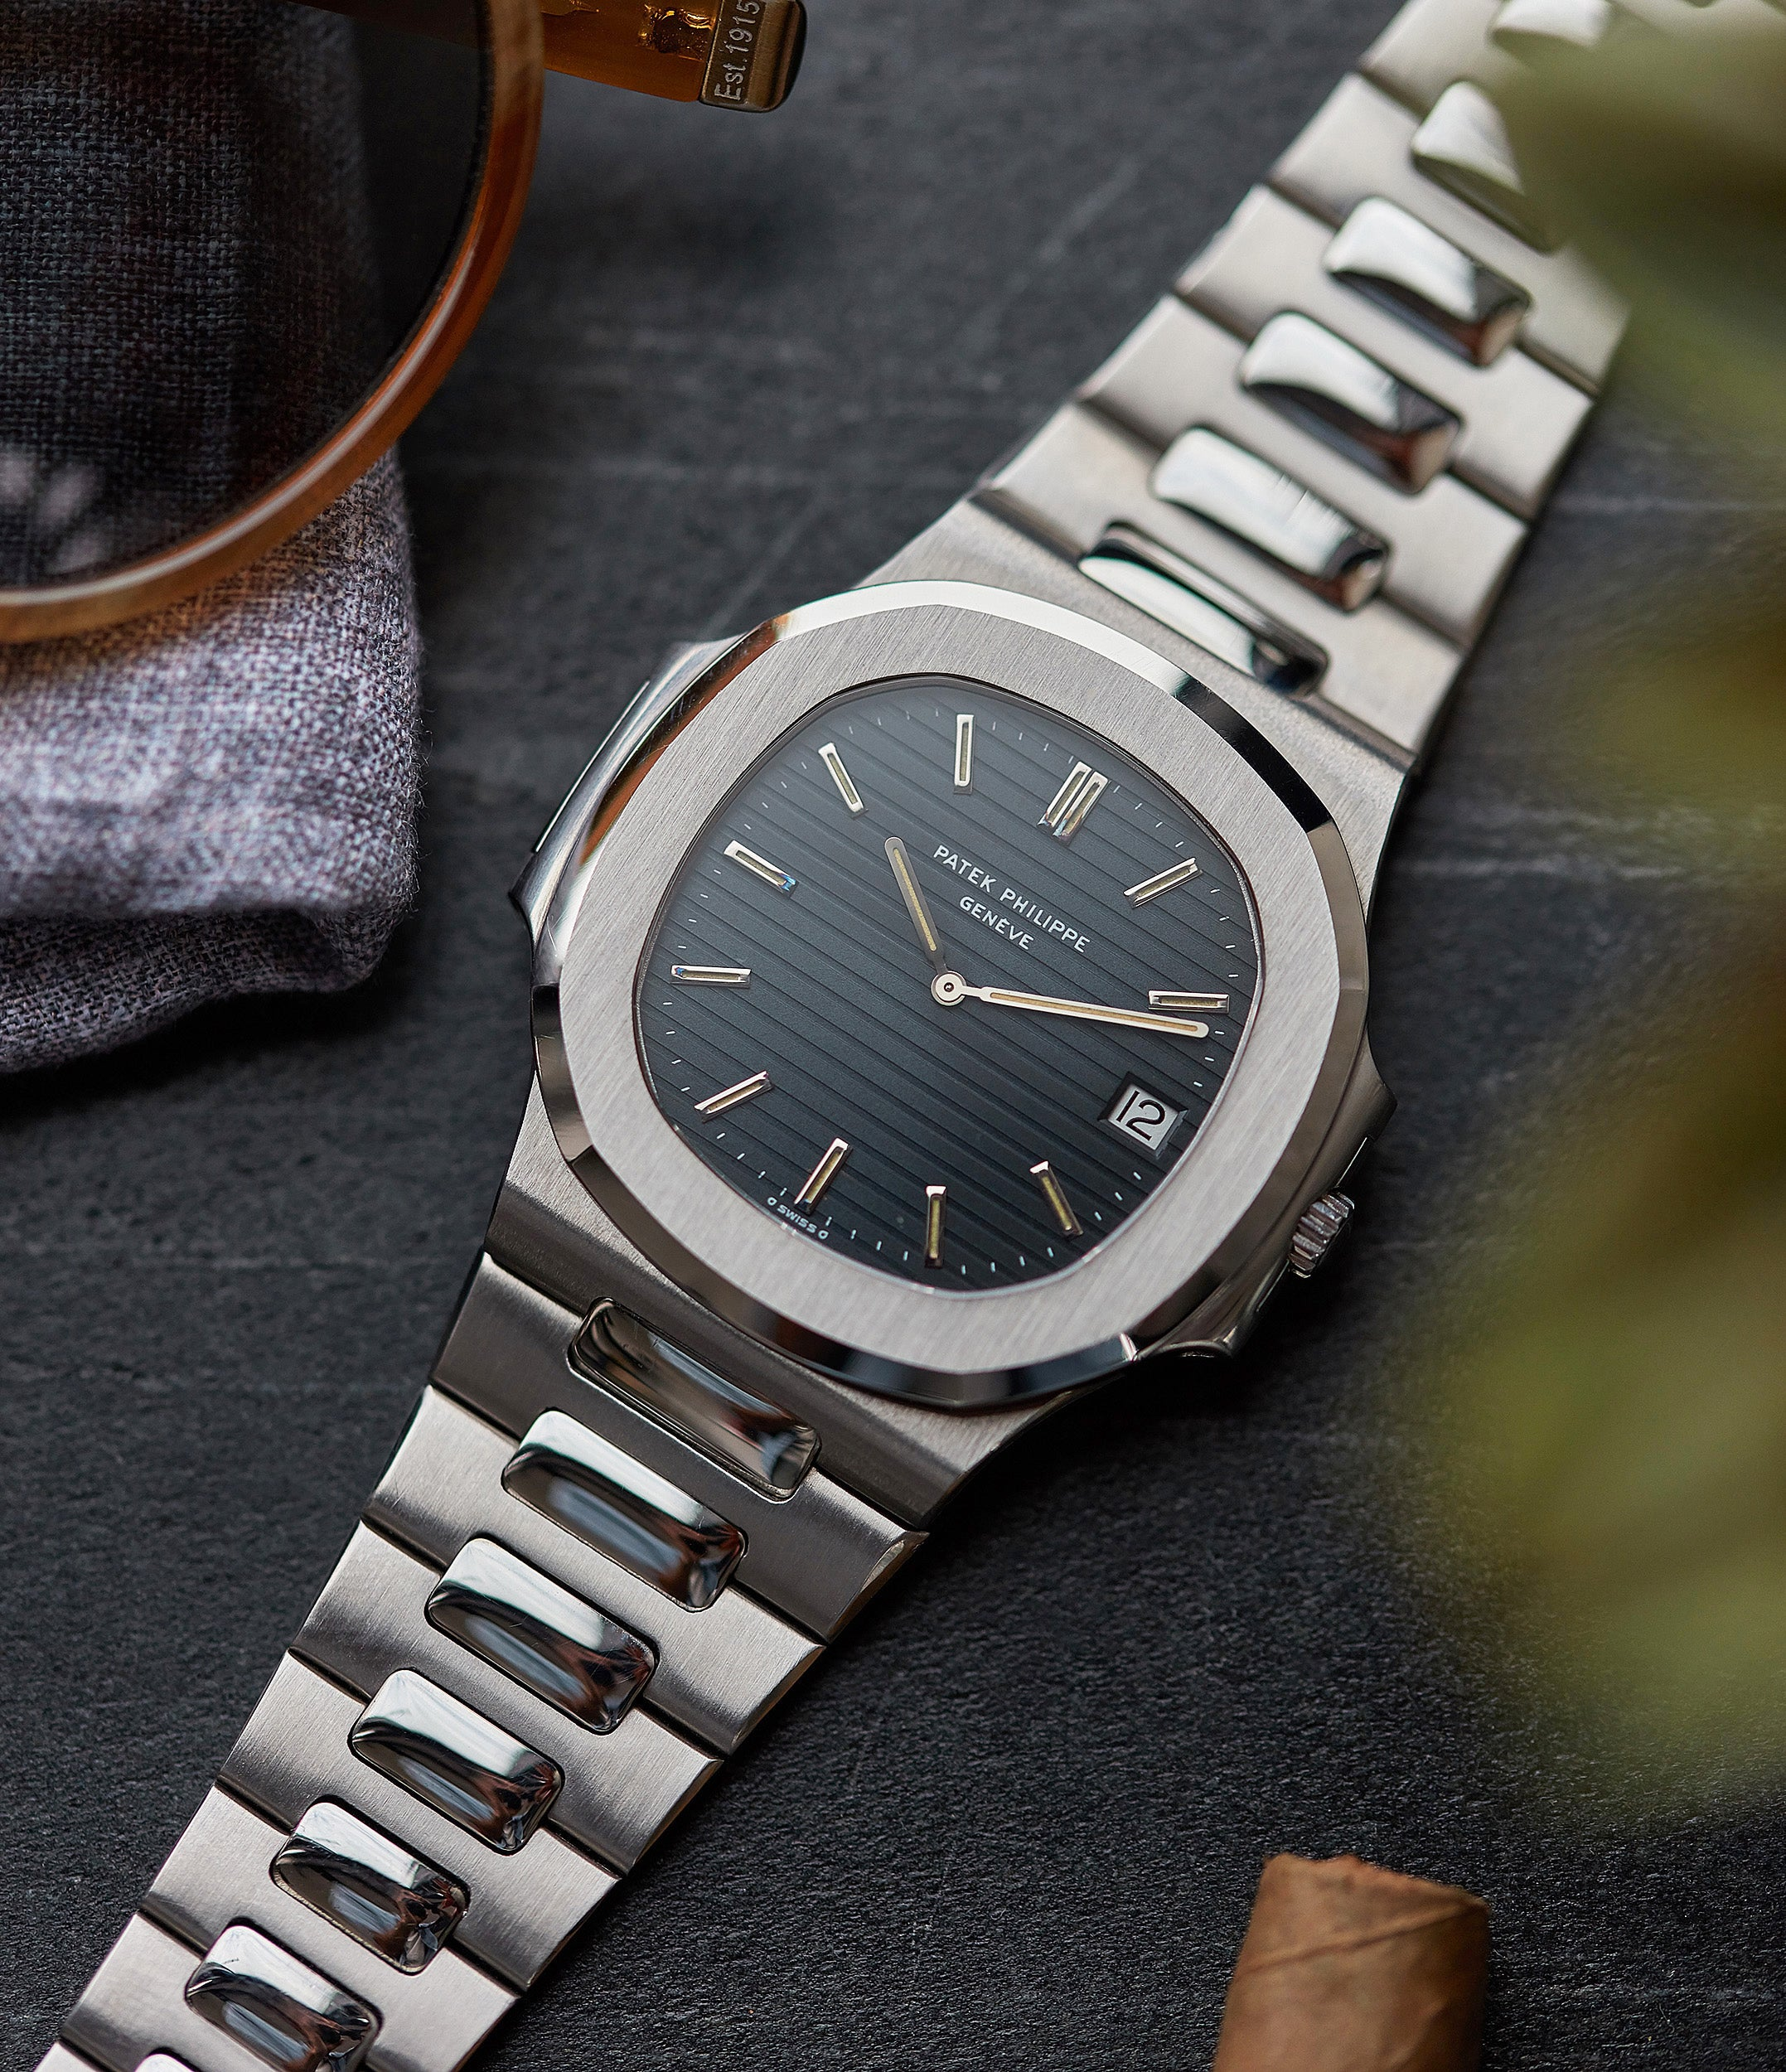 Patek Philippe Nautilus 3700/001 full set vintage sport watch for sale online at A Collected Man London UK specialist of rare watches